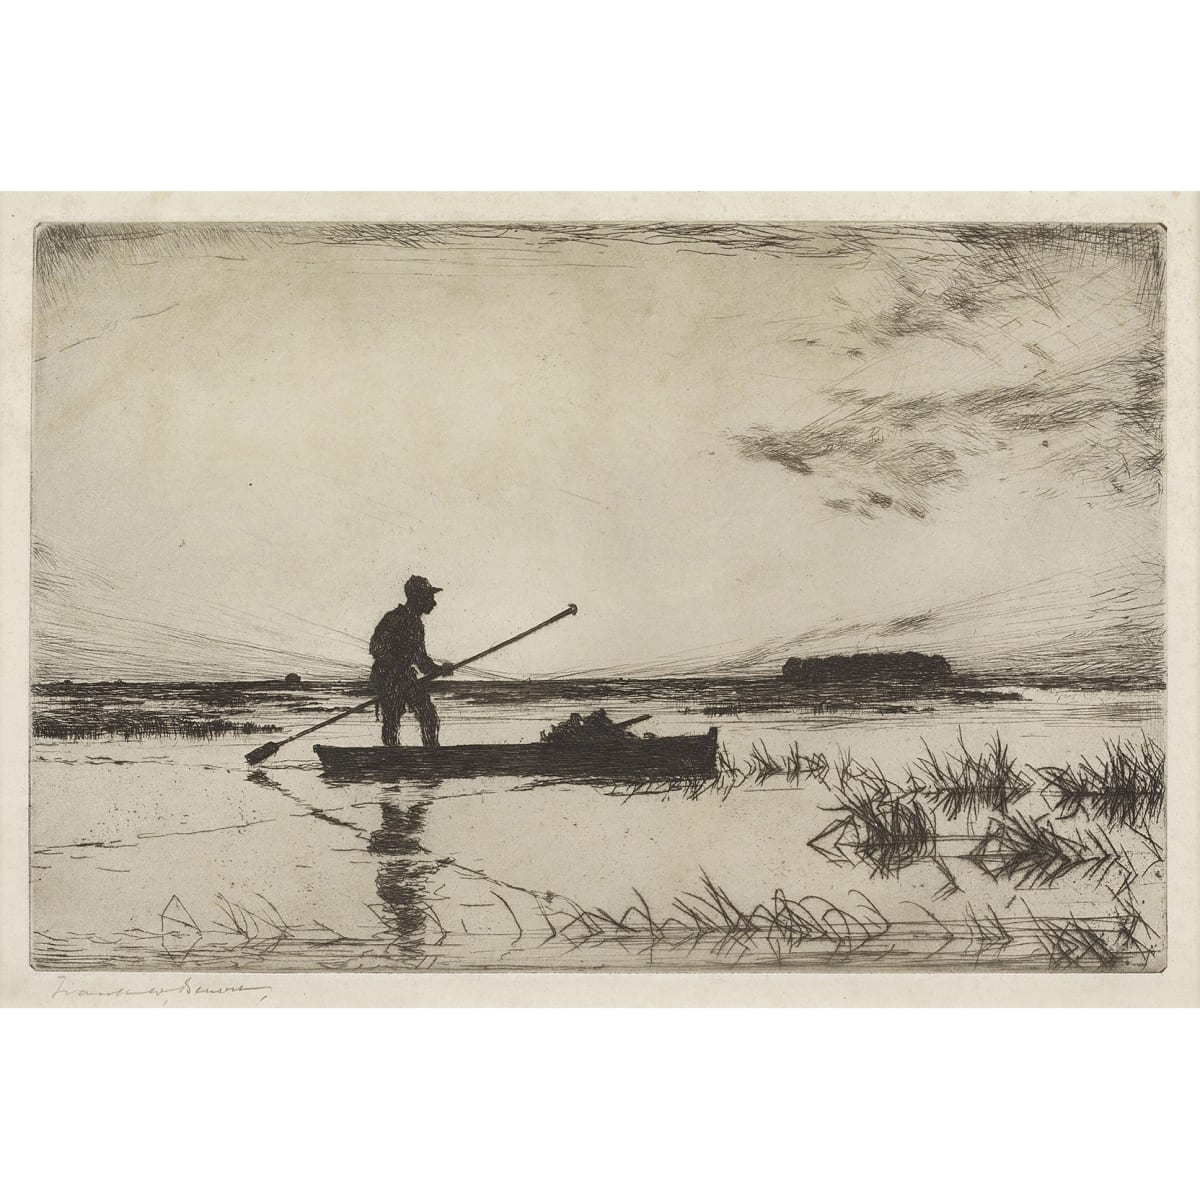 Frank Weston Benson The Punter signed in pencil to margin etching 7 3/4 x 11 1/2 inches